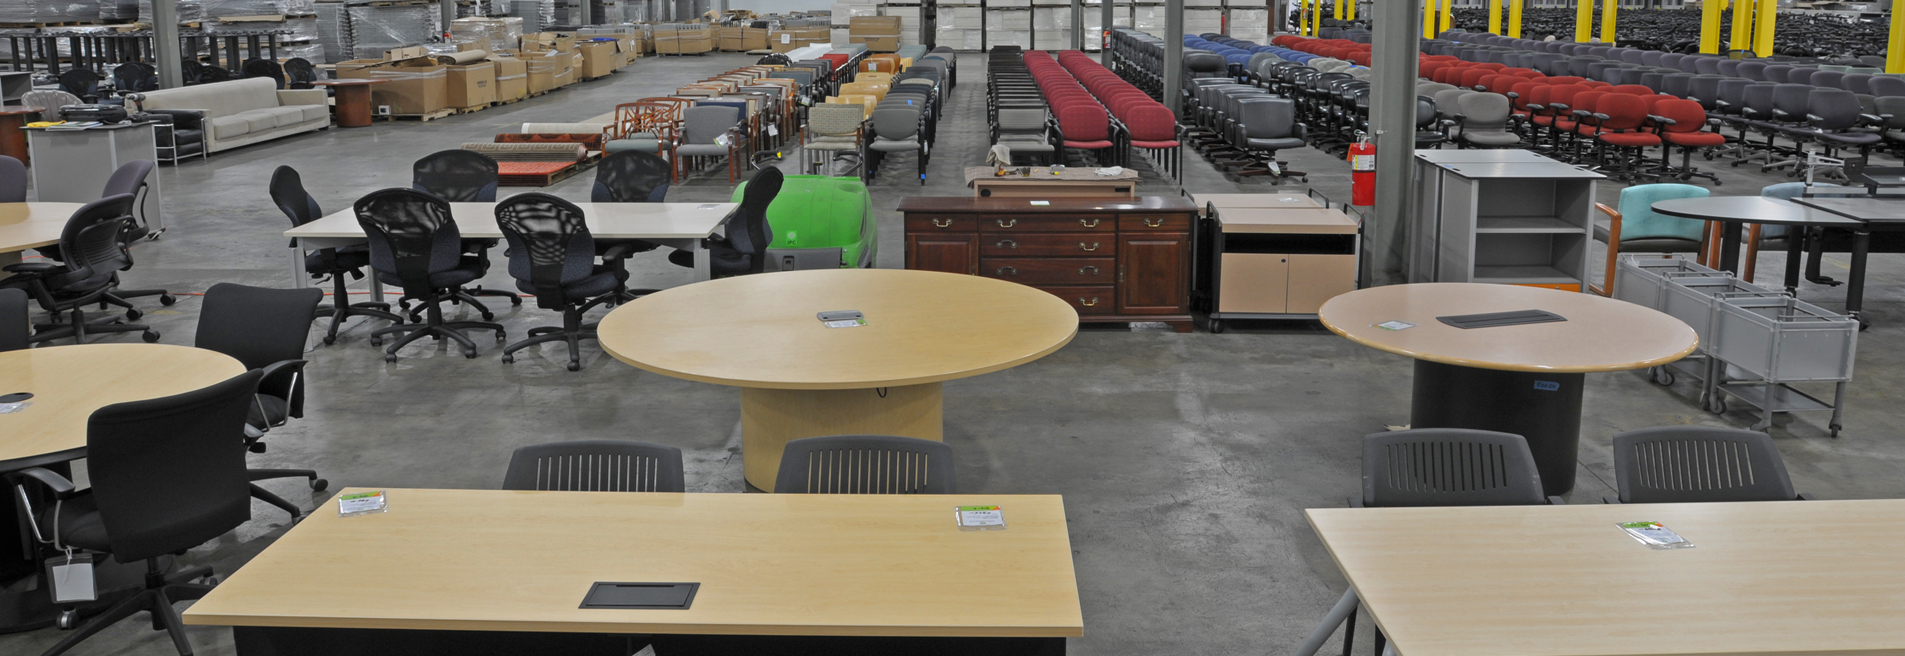 used-office-furniture-for-sale